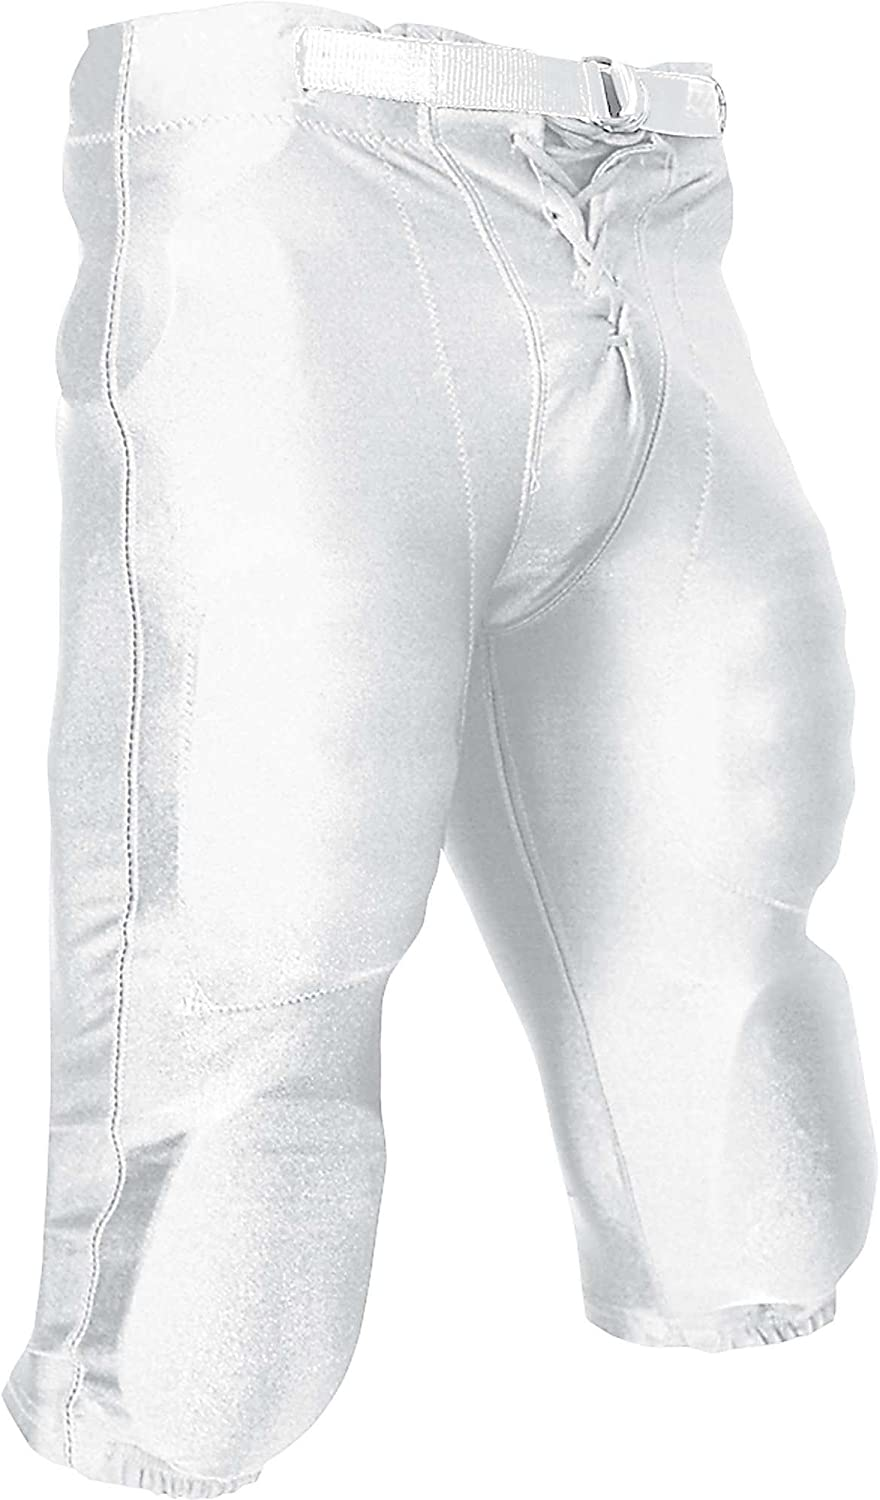 CHAMPRO Youth Stretch Dazzle Football Pant with Snaps White